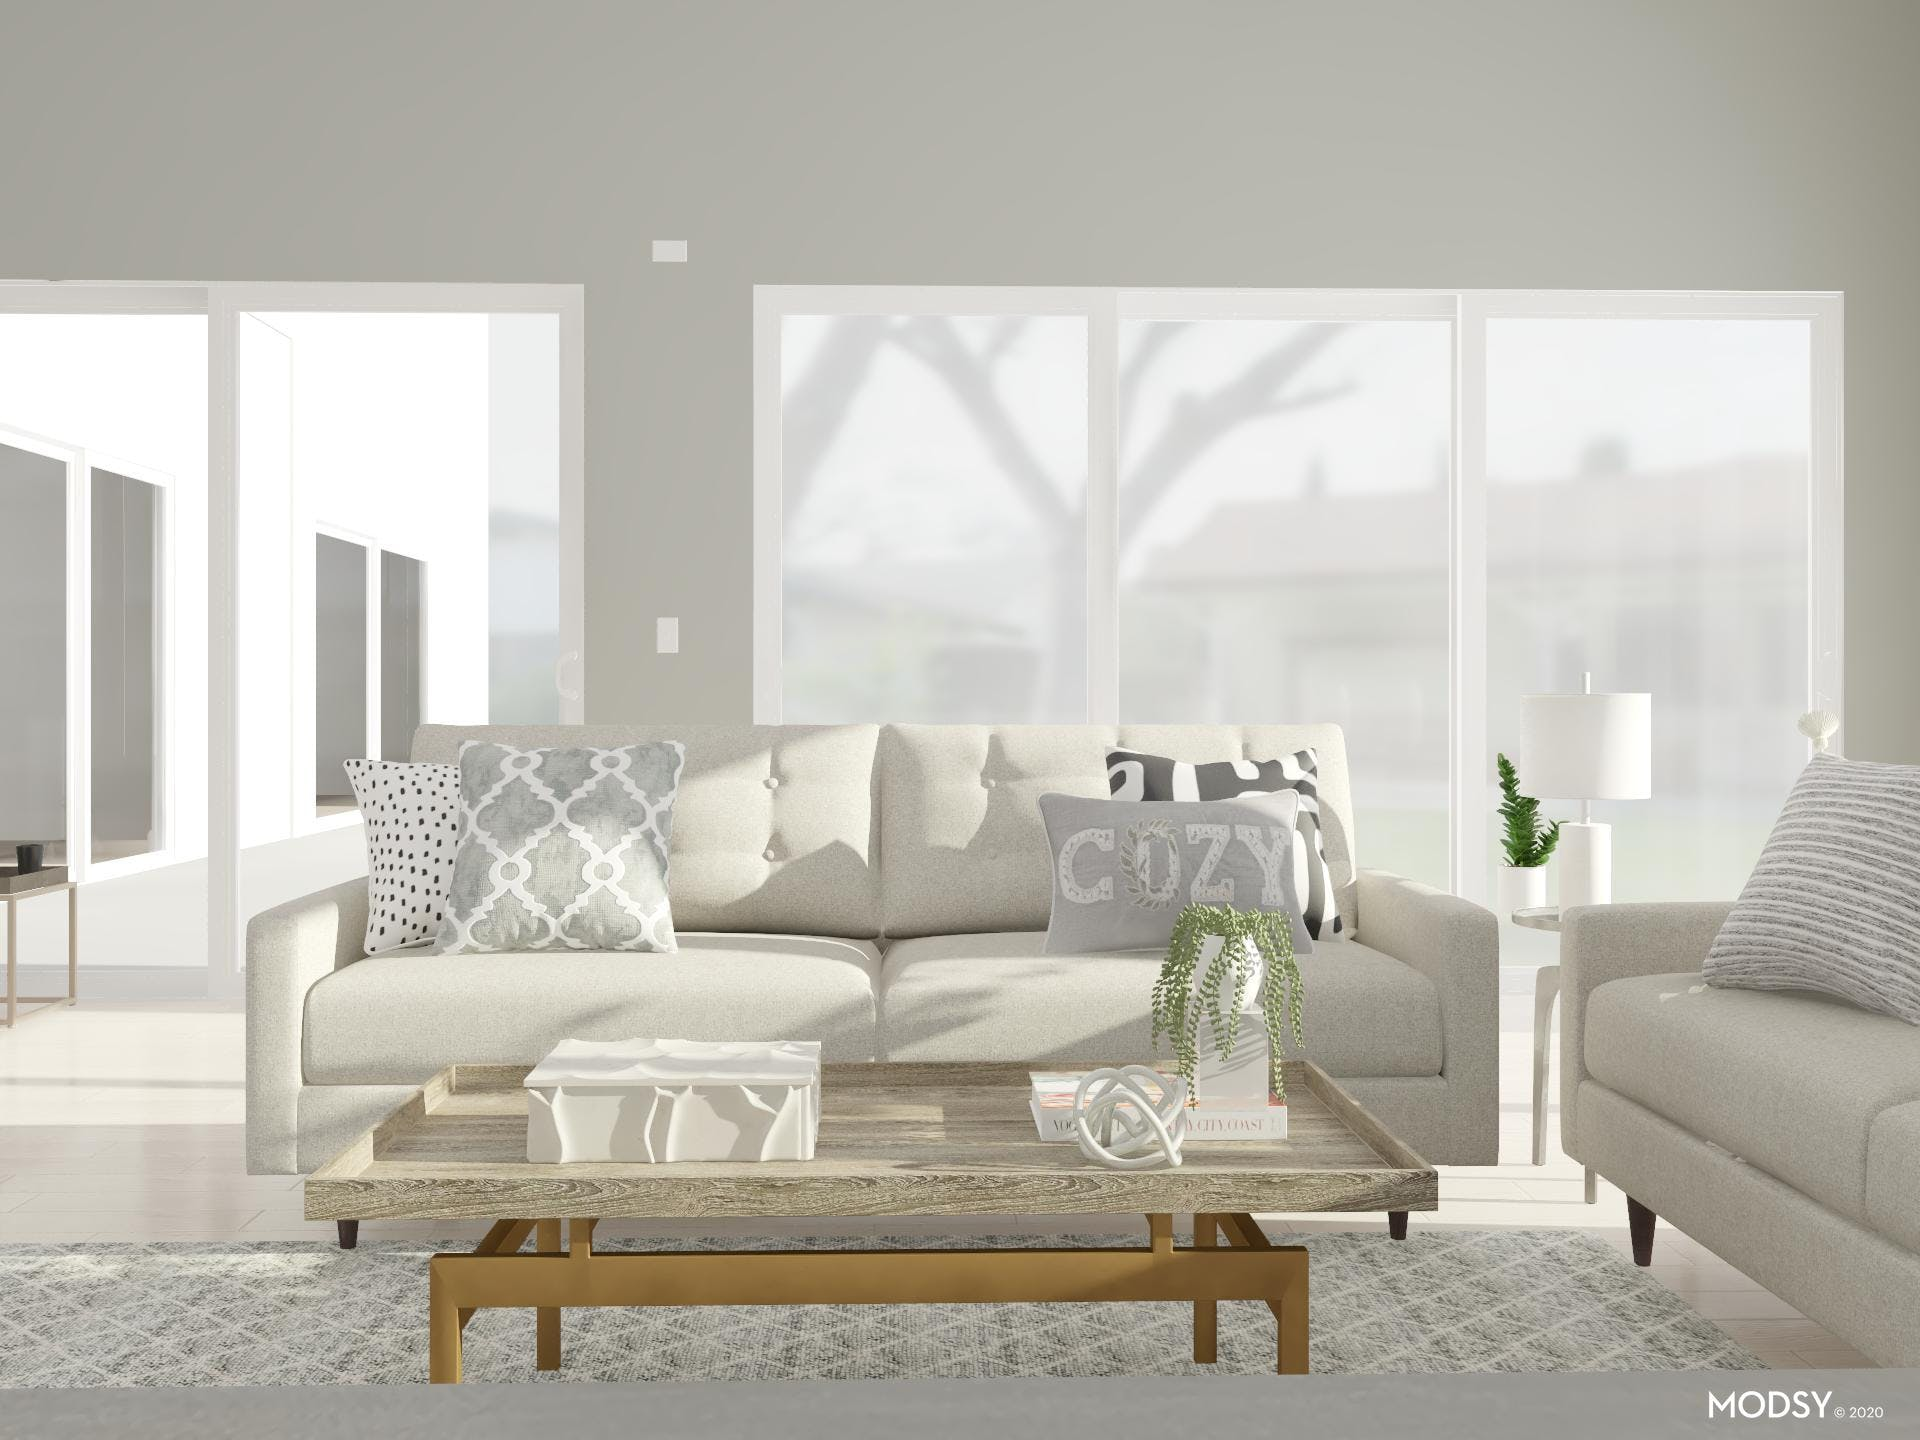 Creating Contrast in Neutral Living Space